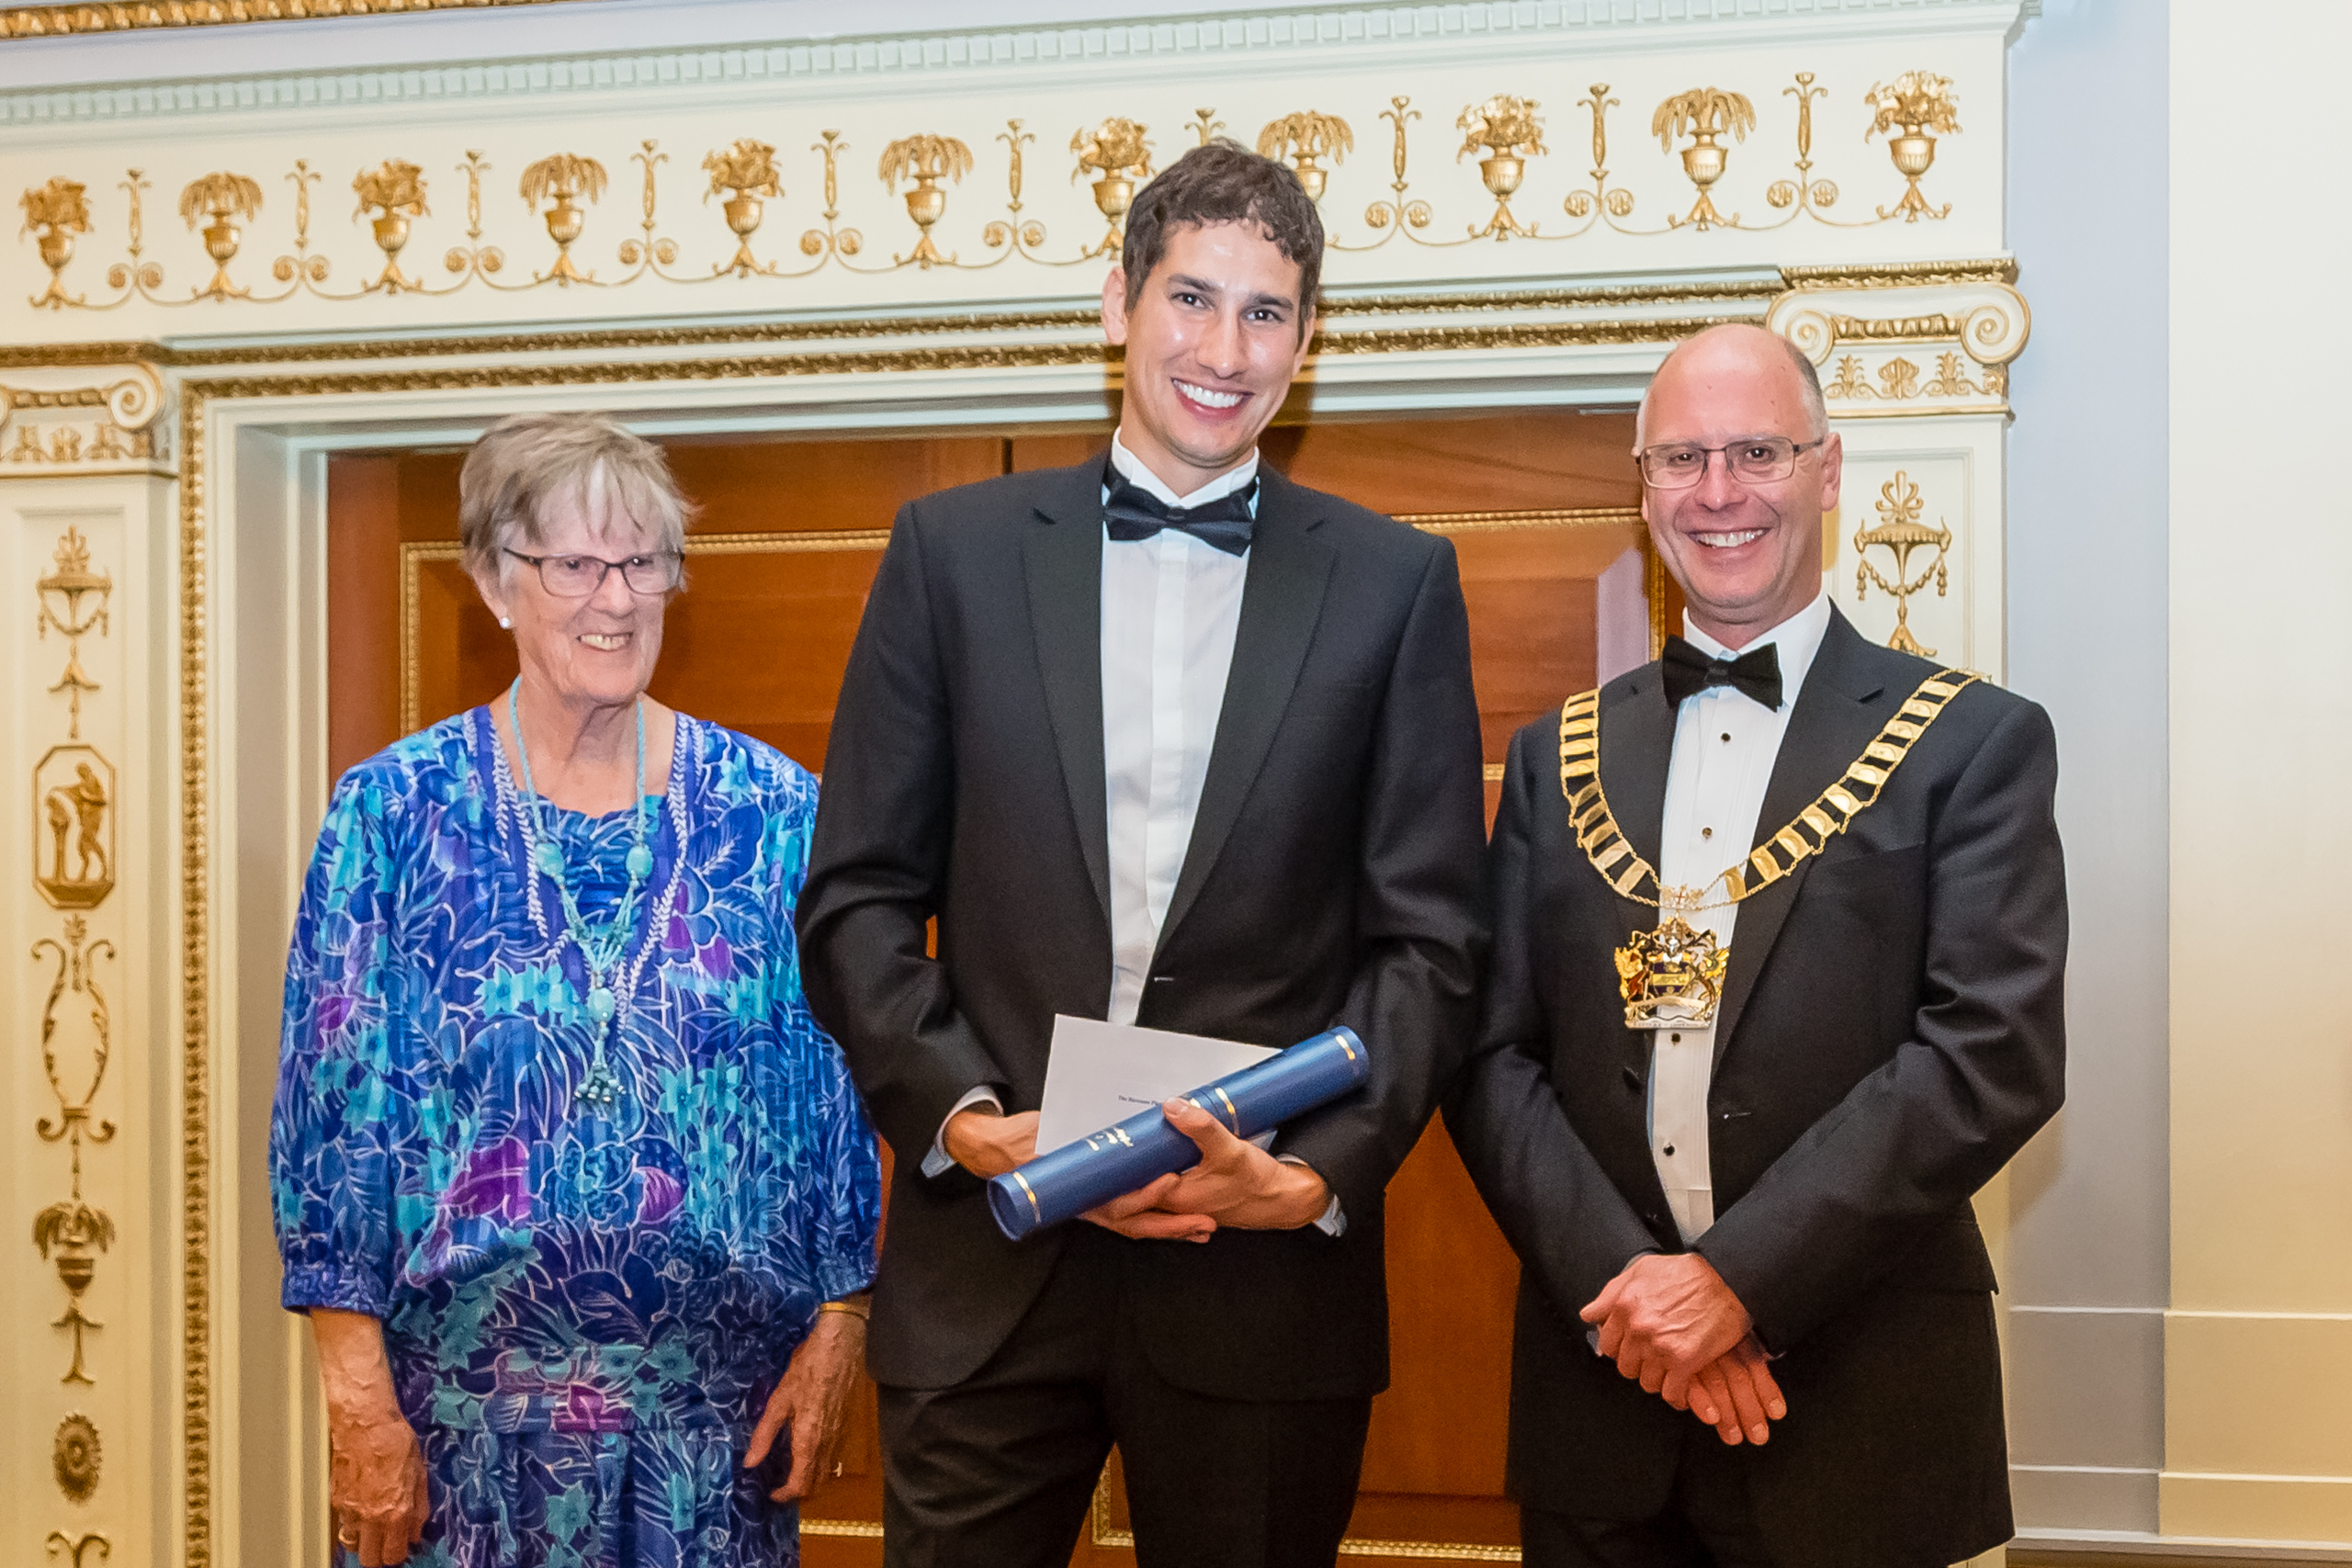 Matthew Foyle receiving the Baroness Platt of Writtle Award from Lady (Belinda) Gadsden (widow of Sir Peter Gadsden, founder Master of the Worshipful Company of Engineers) and Professor David Johnson, Master of the Worshipful Company of Engineers.  Photograph courtesy of Mark Whitter Photography.